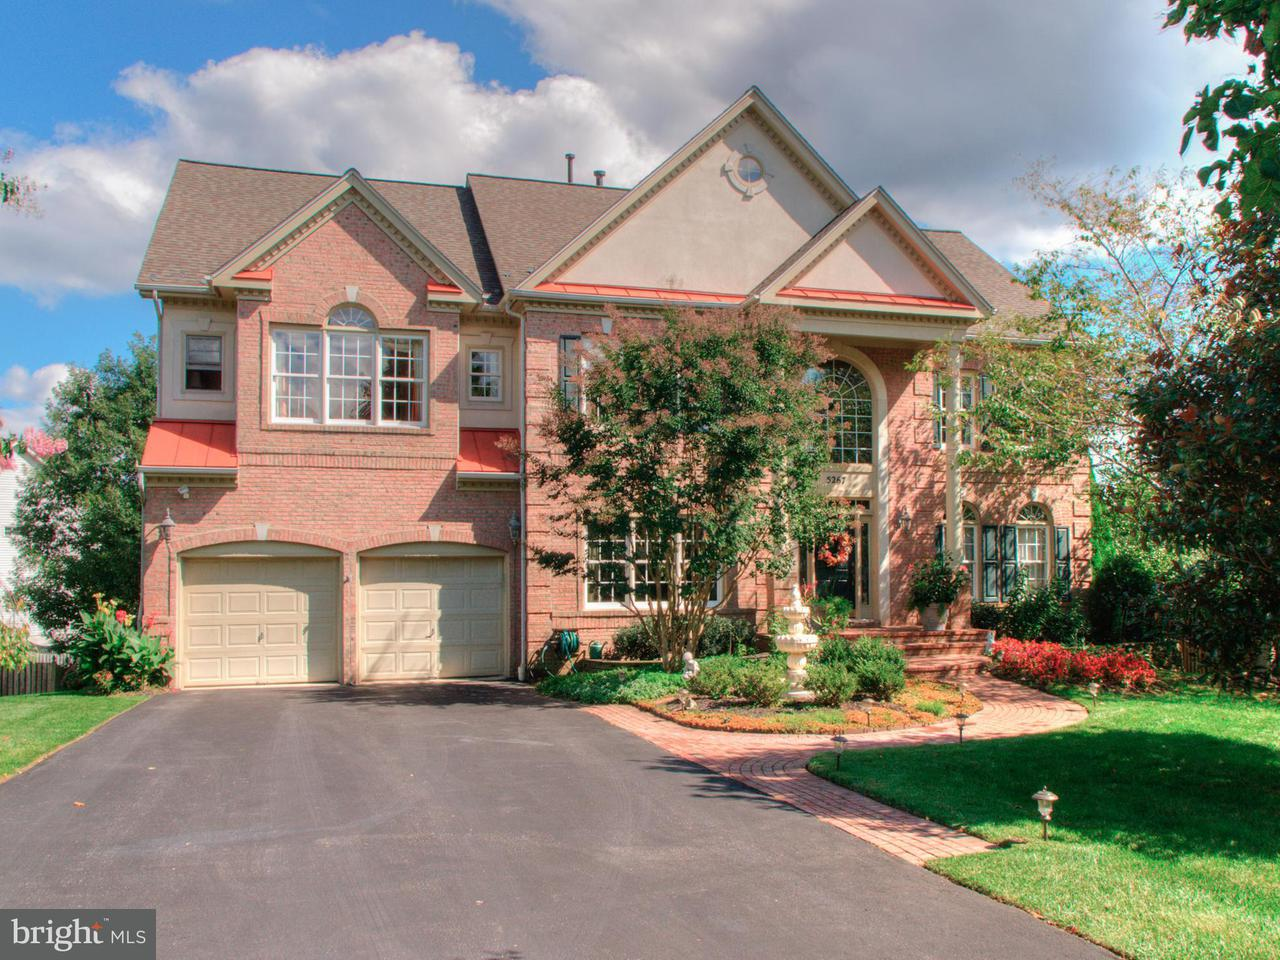 Single Family Home for Sale at 5267 GROVEMONT Drive 5267 GROVEMONT Drive Elkridge, Maryland 21075 United States